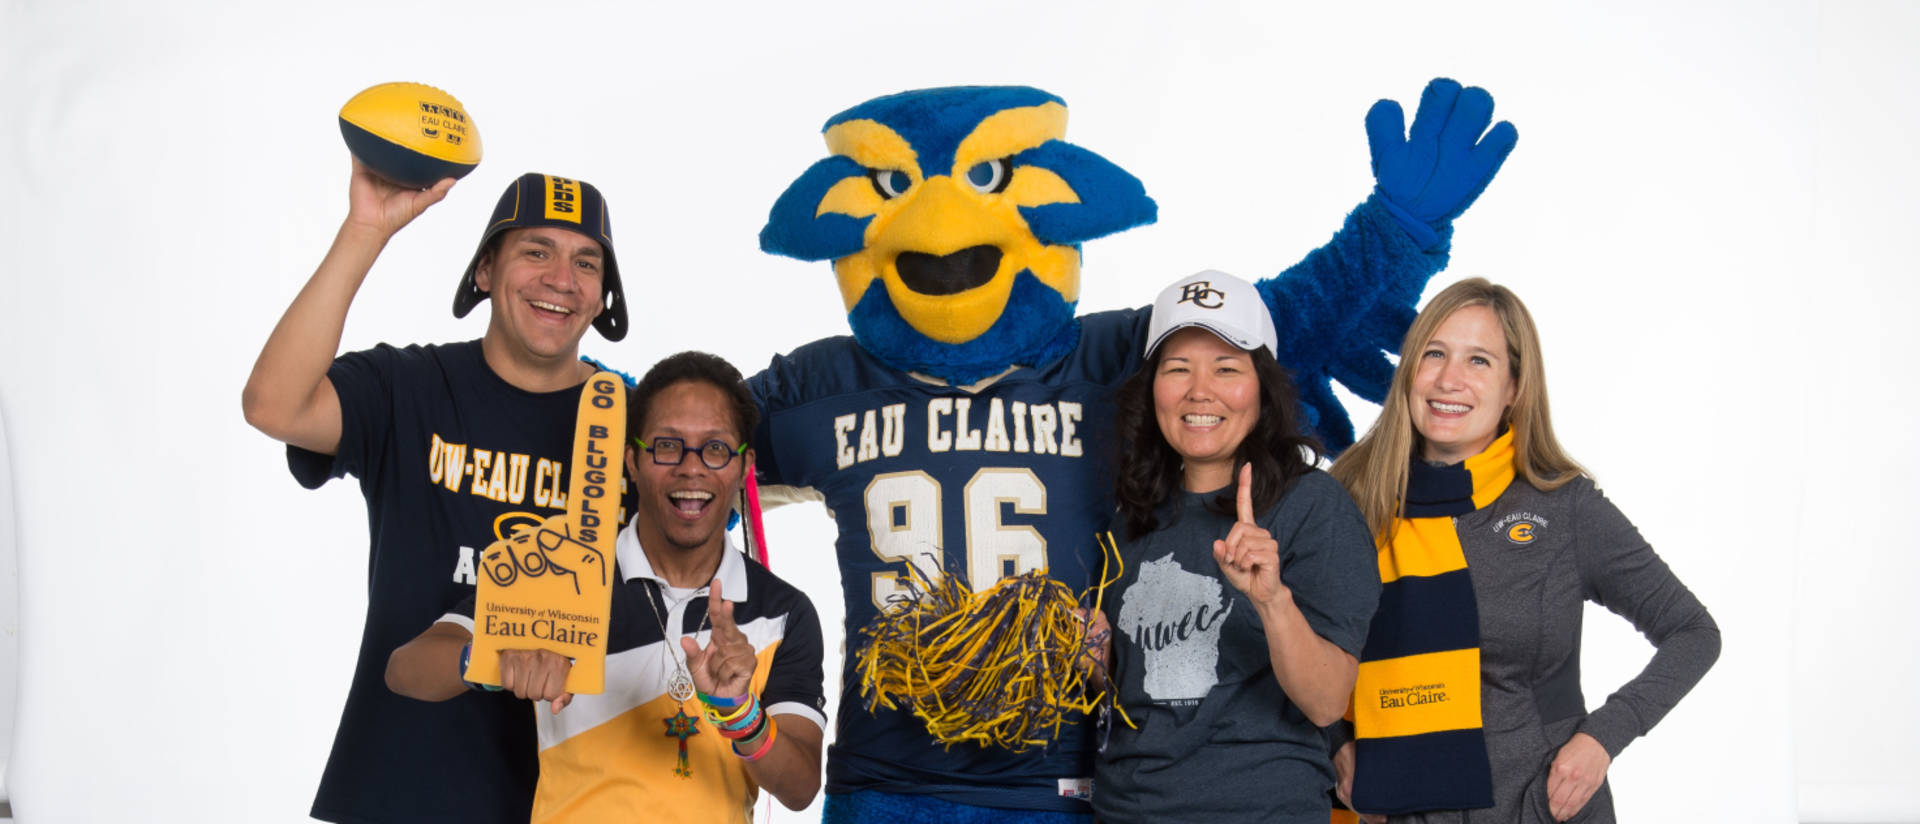 Faculty modeling Blugold apparel during a photoshoot